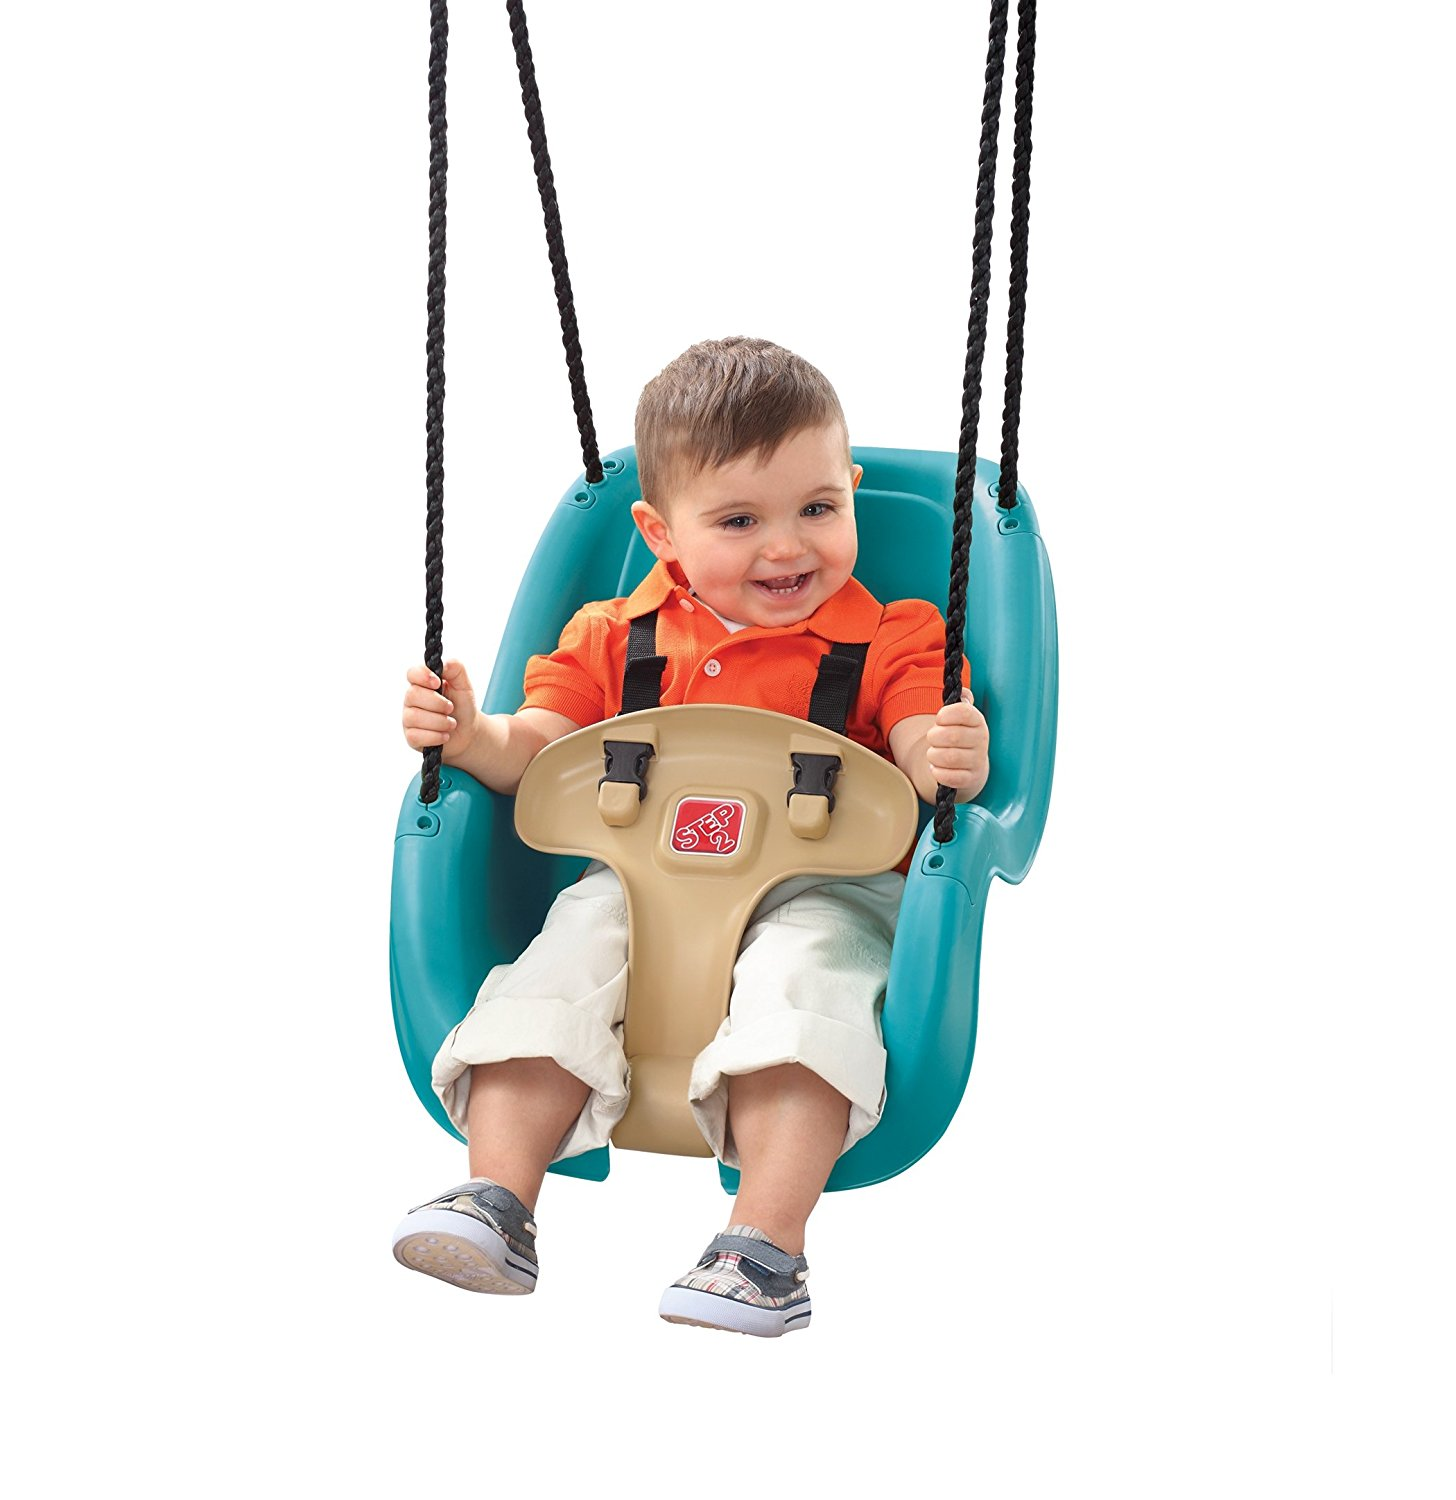 Step2 Infant/Toddler Swing Seat